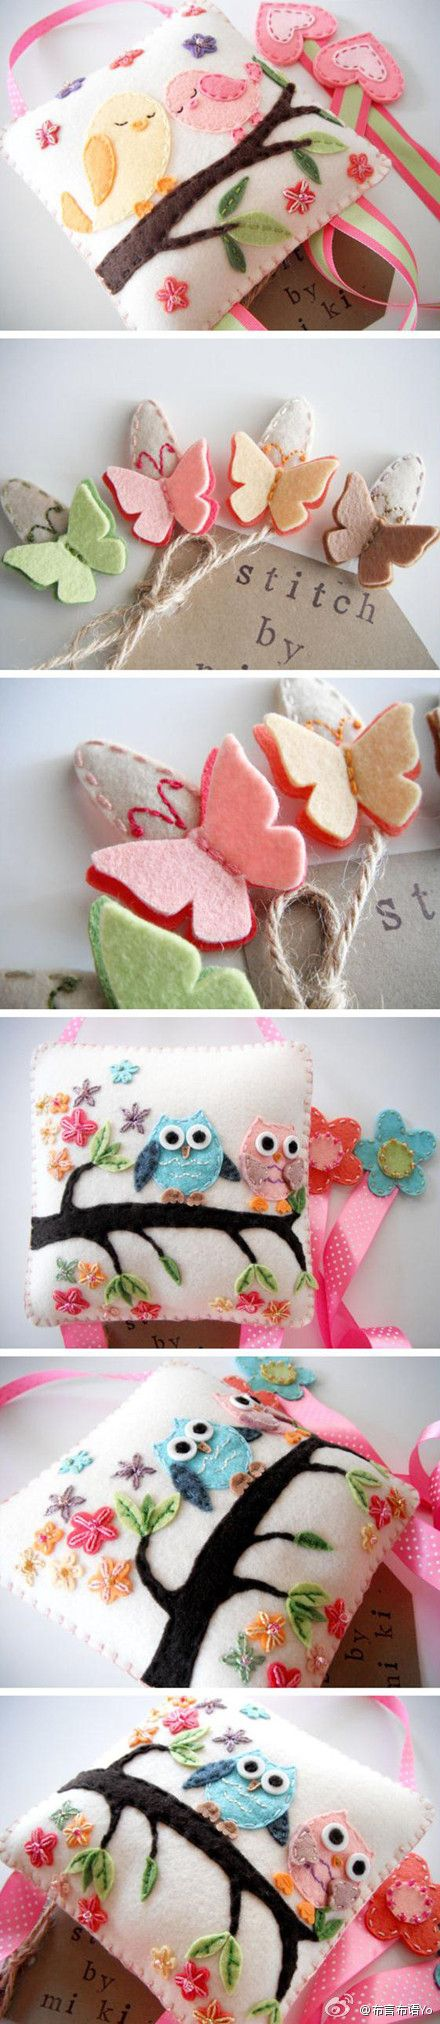 Hair clip holder ~ Felt owls & birds,  butterfly hair clips by MikiStitch EtsyCom ~